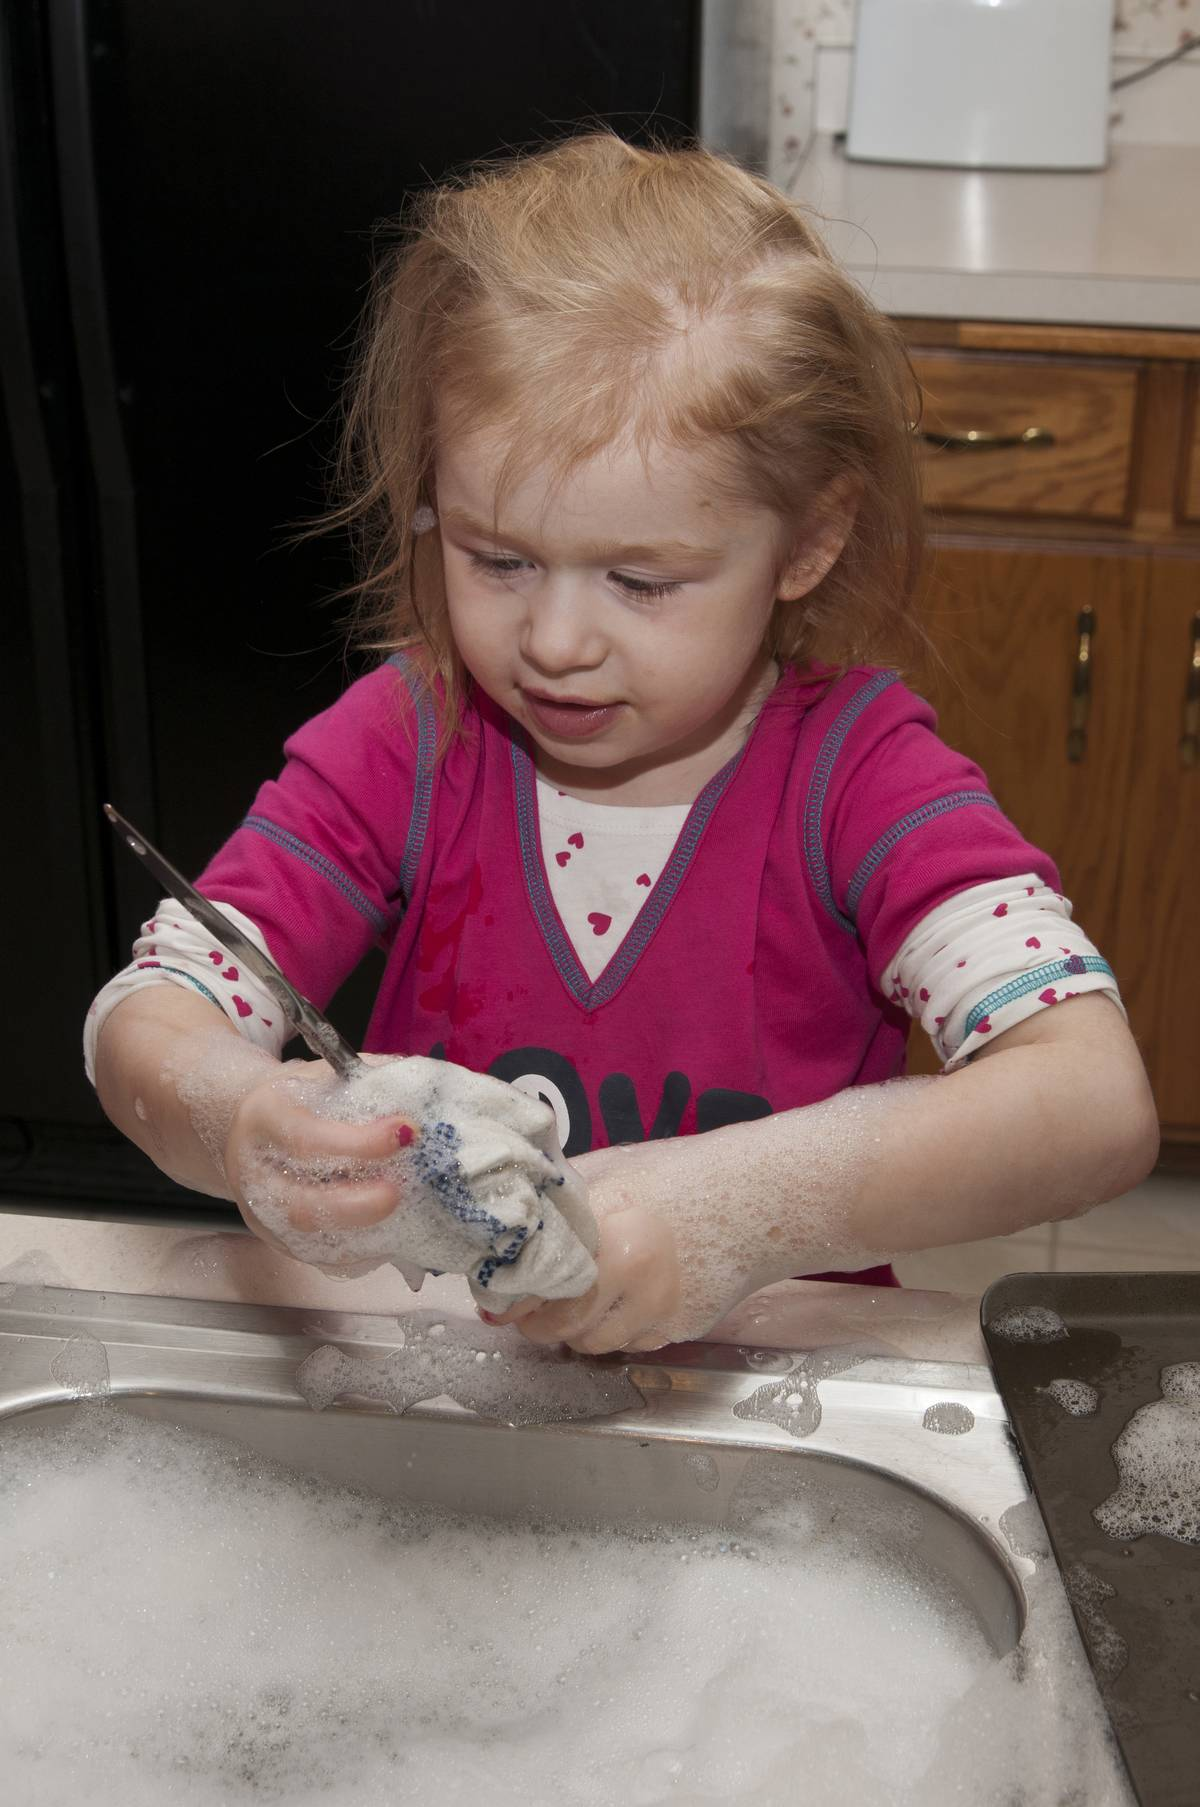 Girl helping with chores by doing dishes